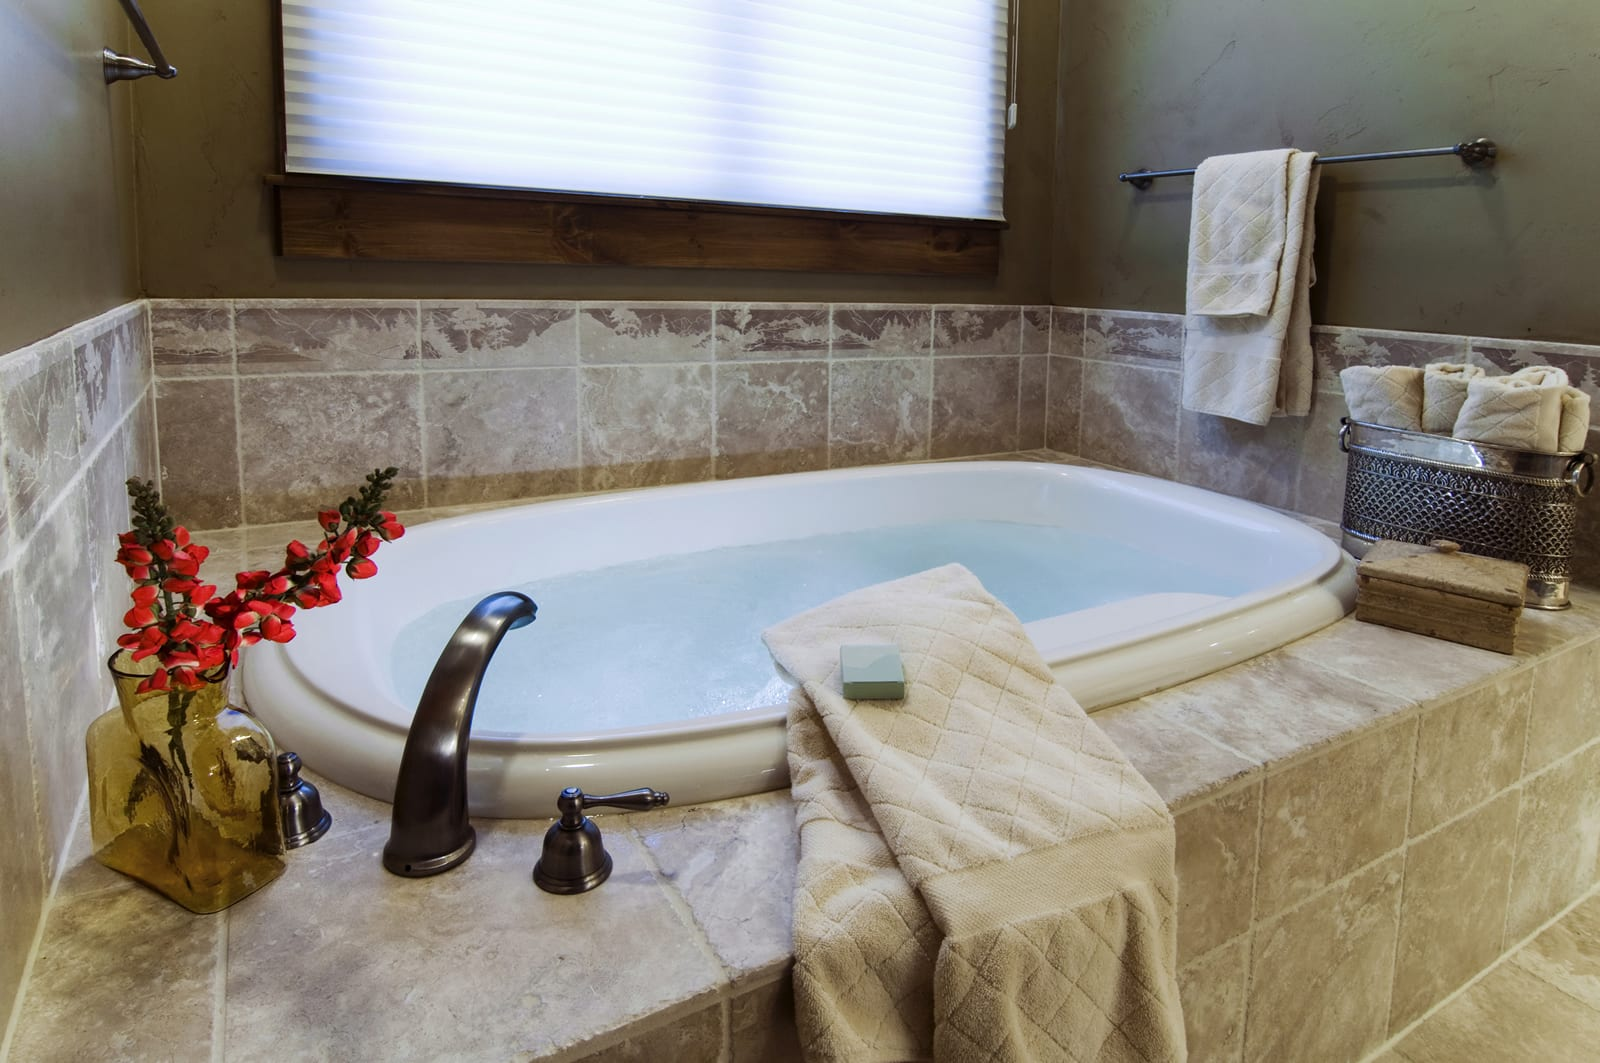 Bathroom remodeling phoenix bathroom remodeling bathroom remodeling dailygadgetfo Images